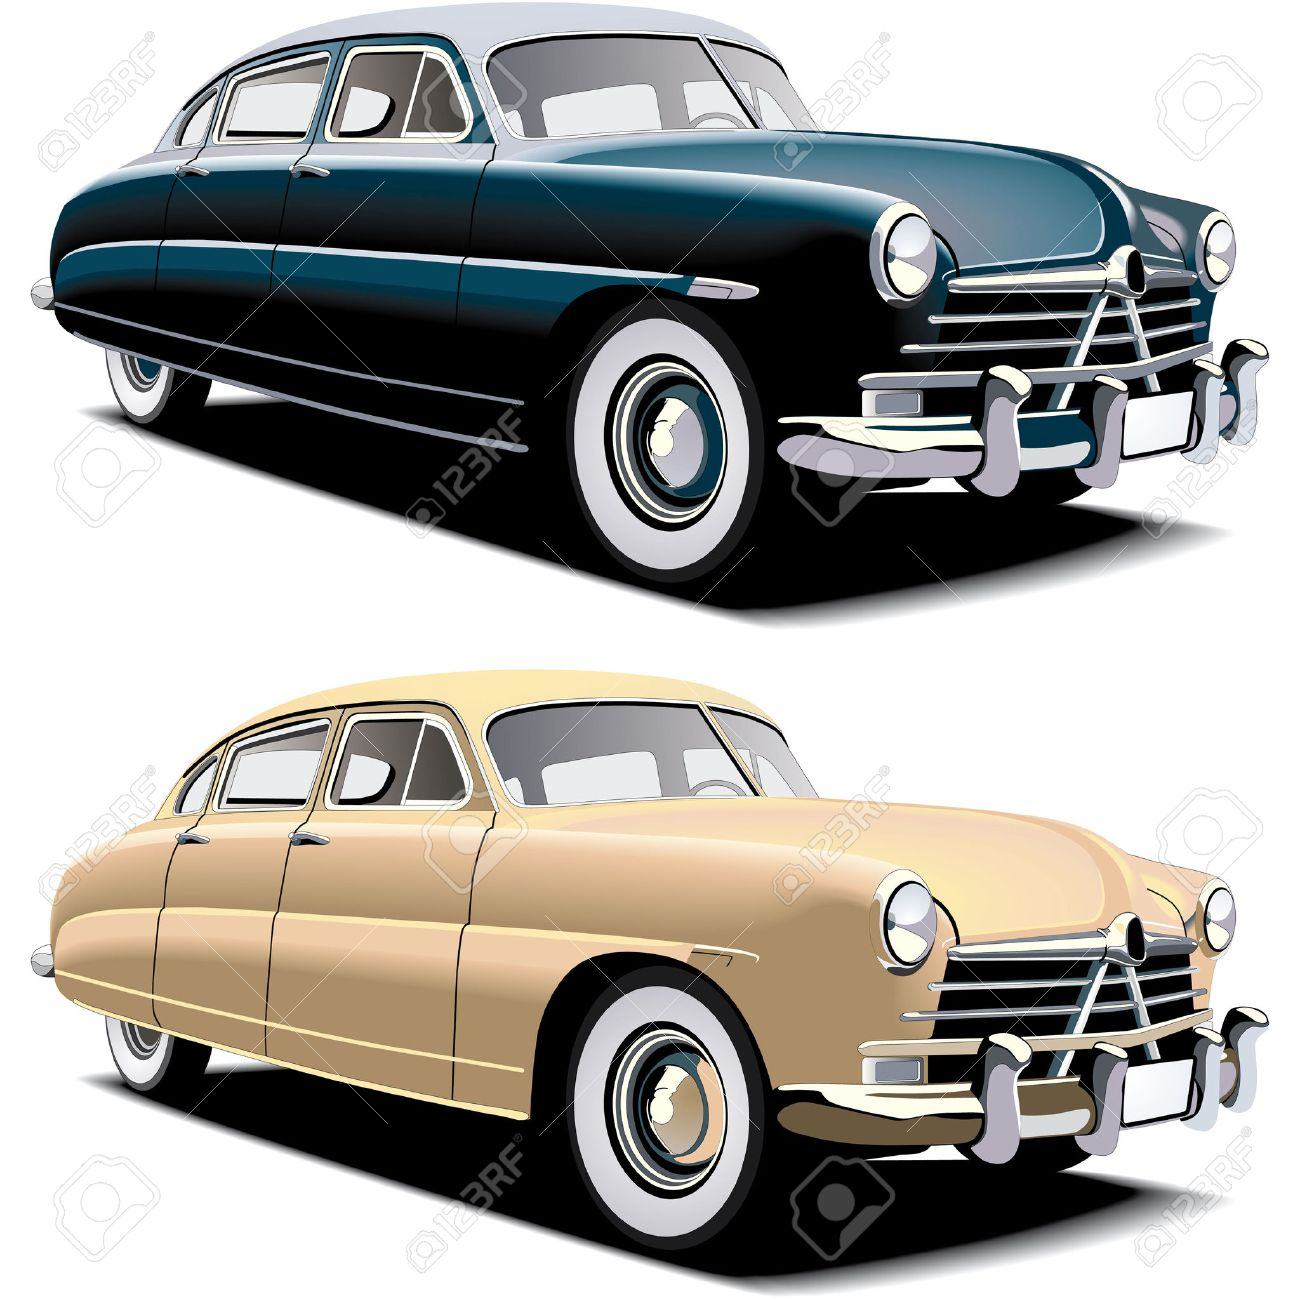 Cadillac Classic American Vintage Cars Editorial Image - Image ...